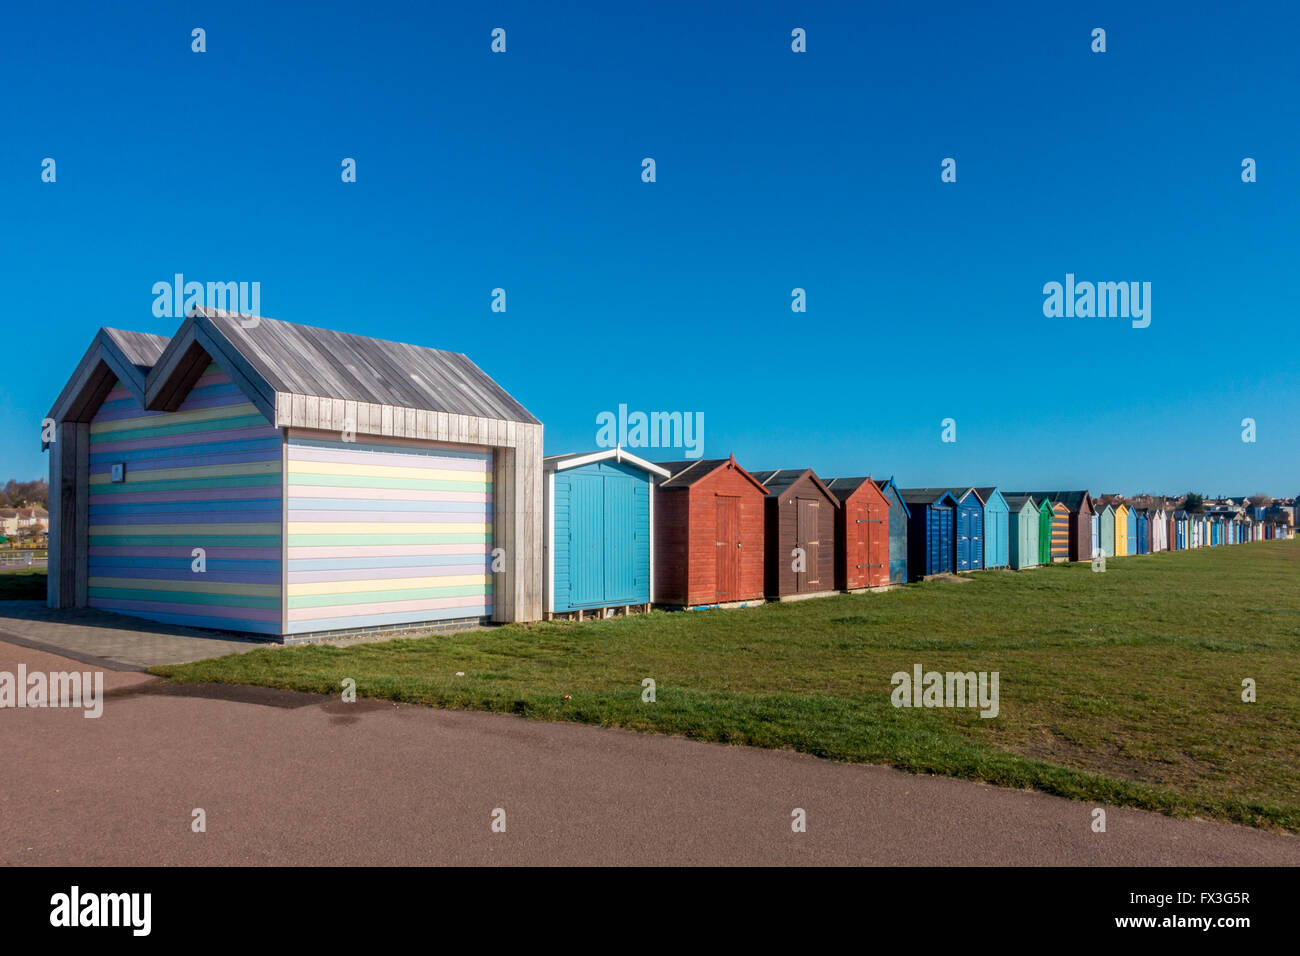 Accessible seafront: Disability beach hut, Dovercourt Bay, Harwich, Essex, UK - Stock Image